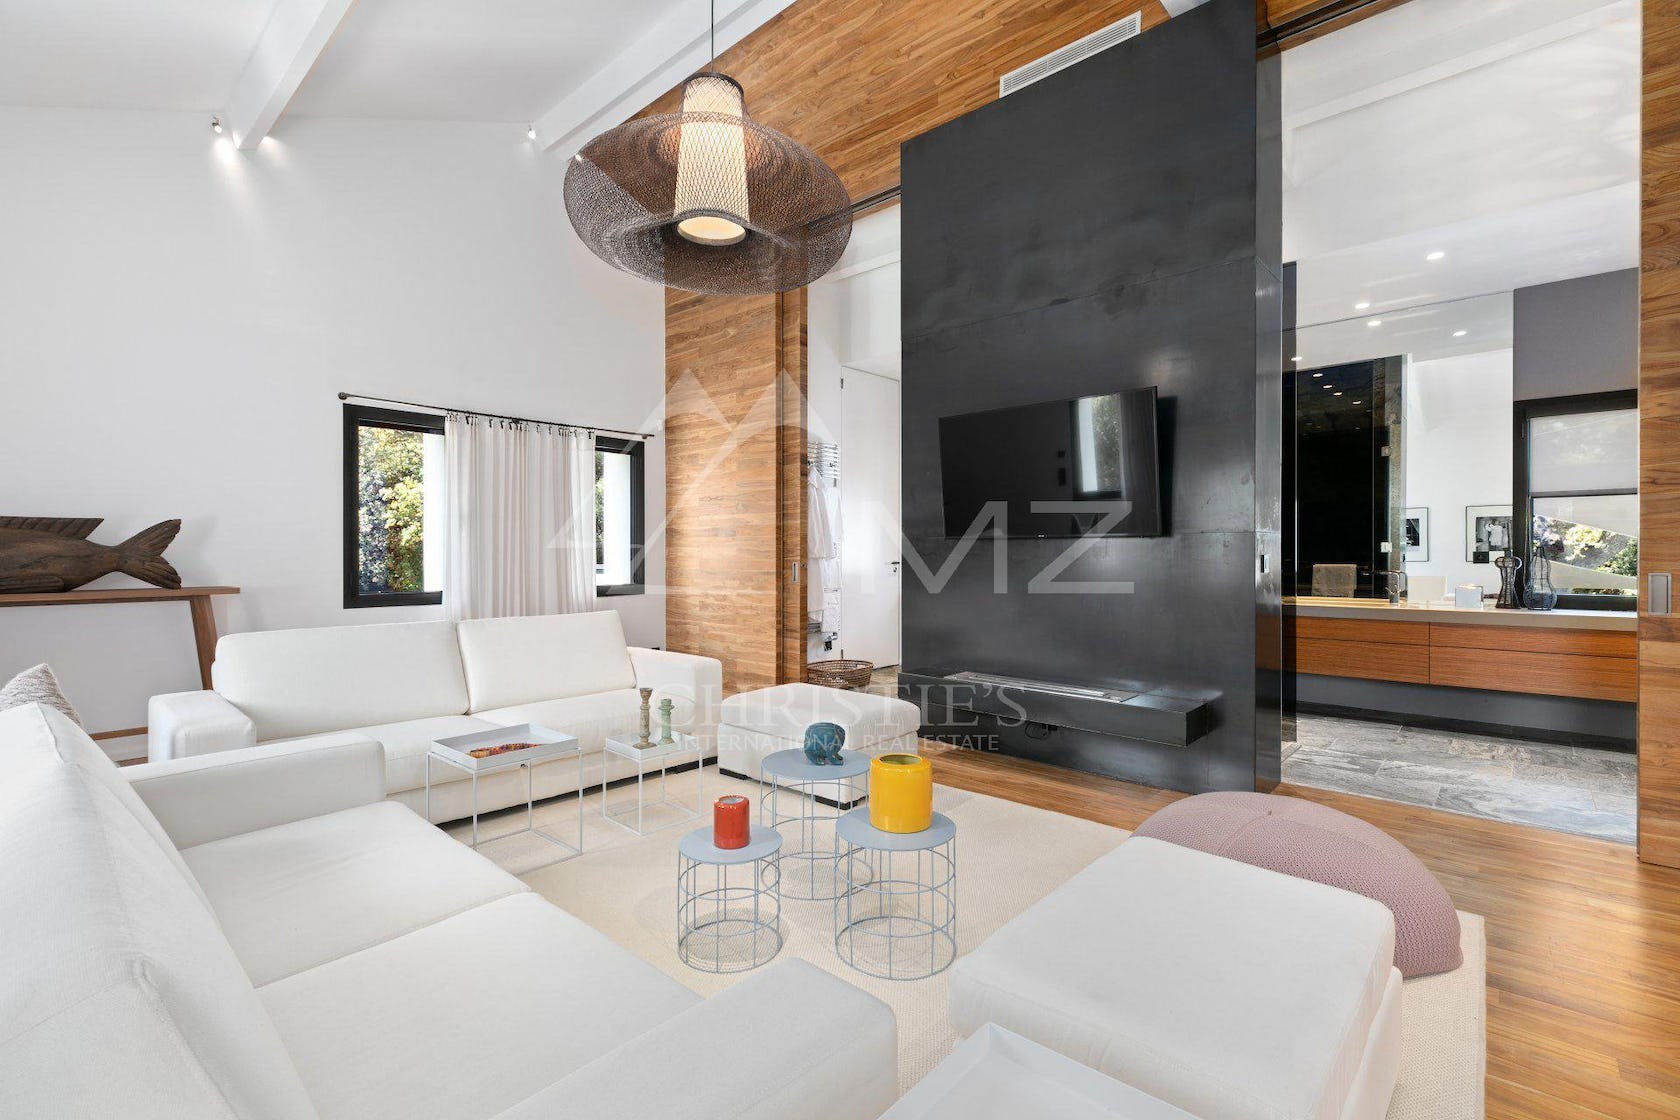 living room indoors room interior design furniture housing building table couch